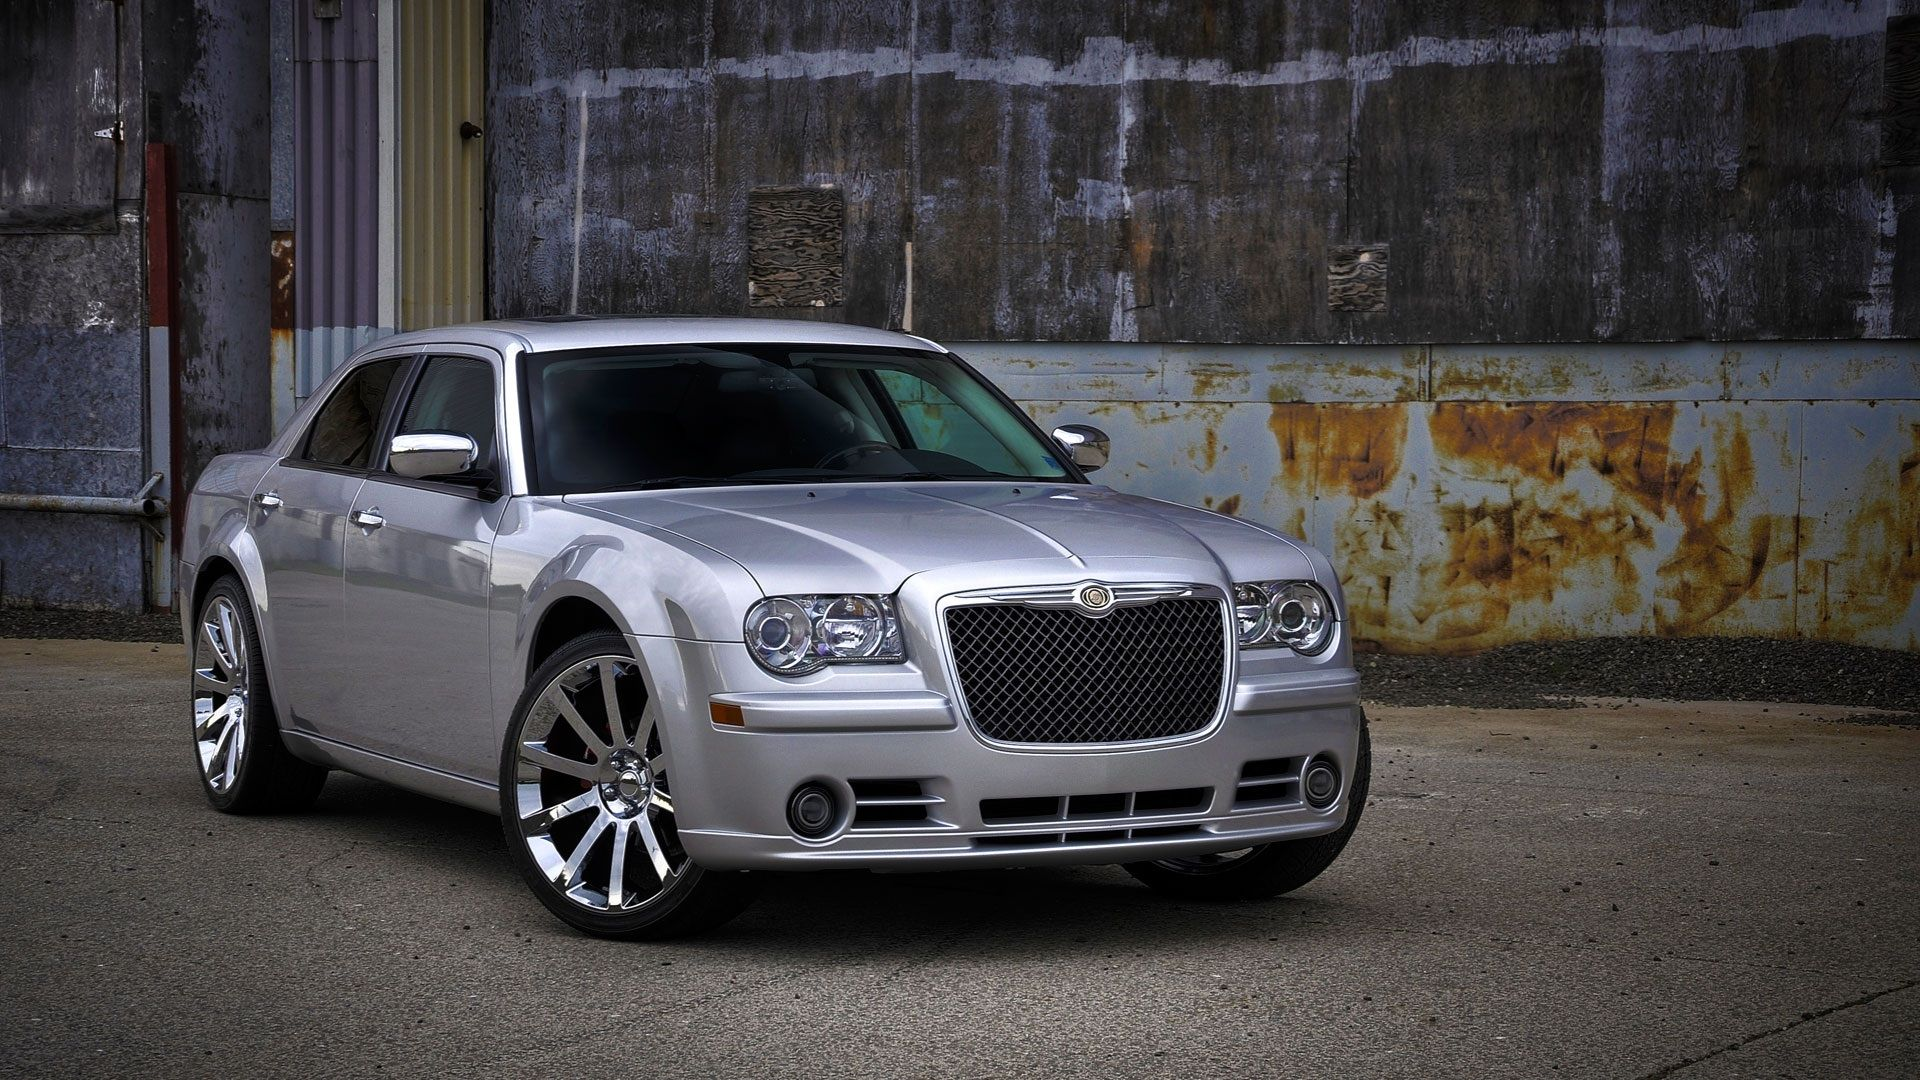 Chrysler 300 22 Srt8 Replica Chrome Wheels With Images